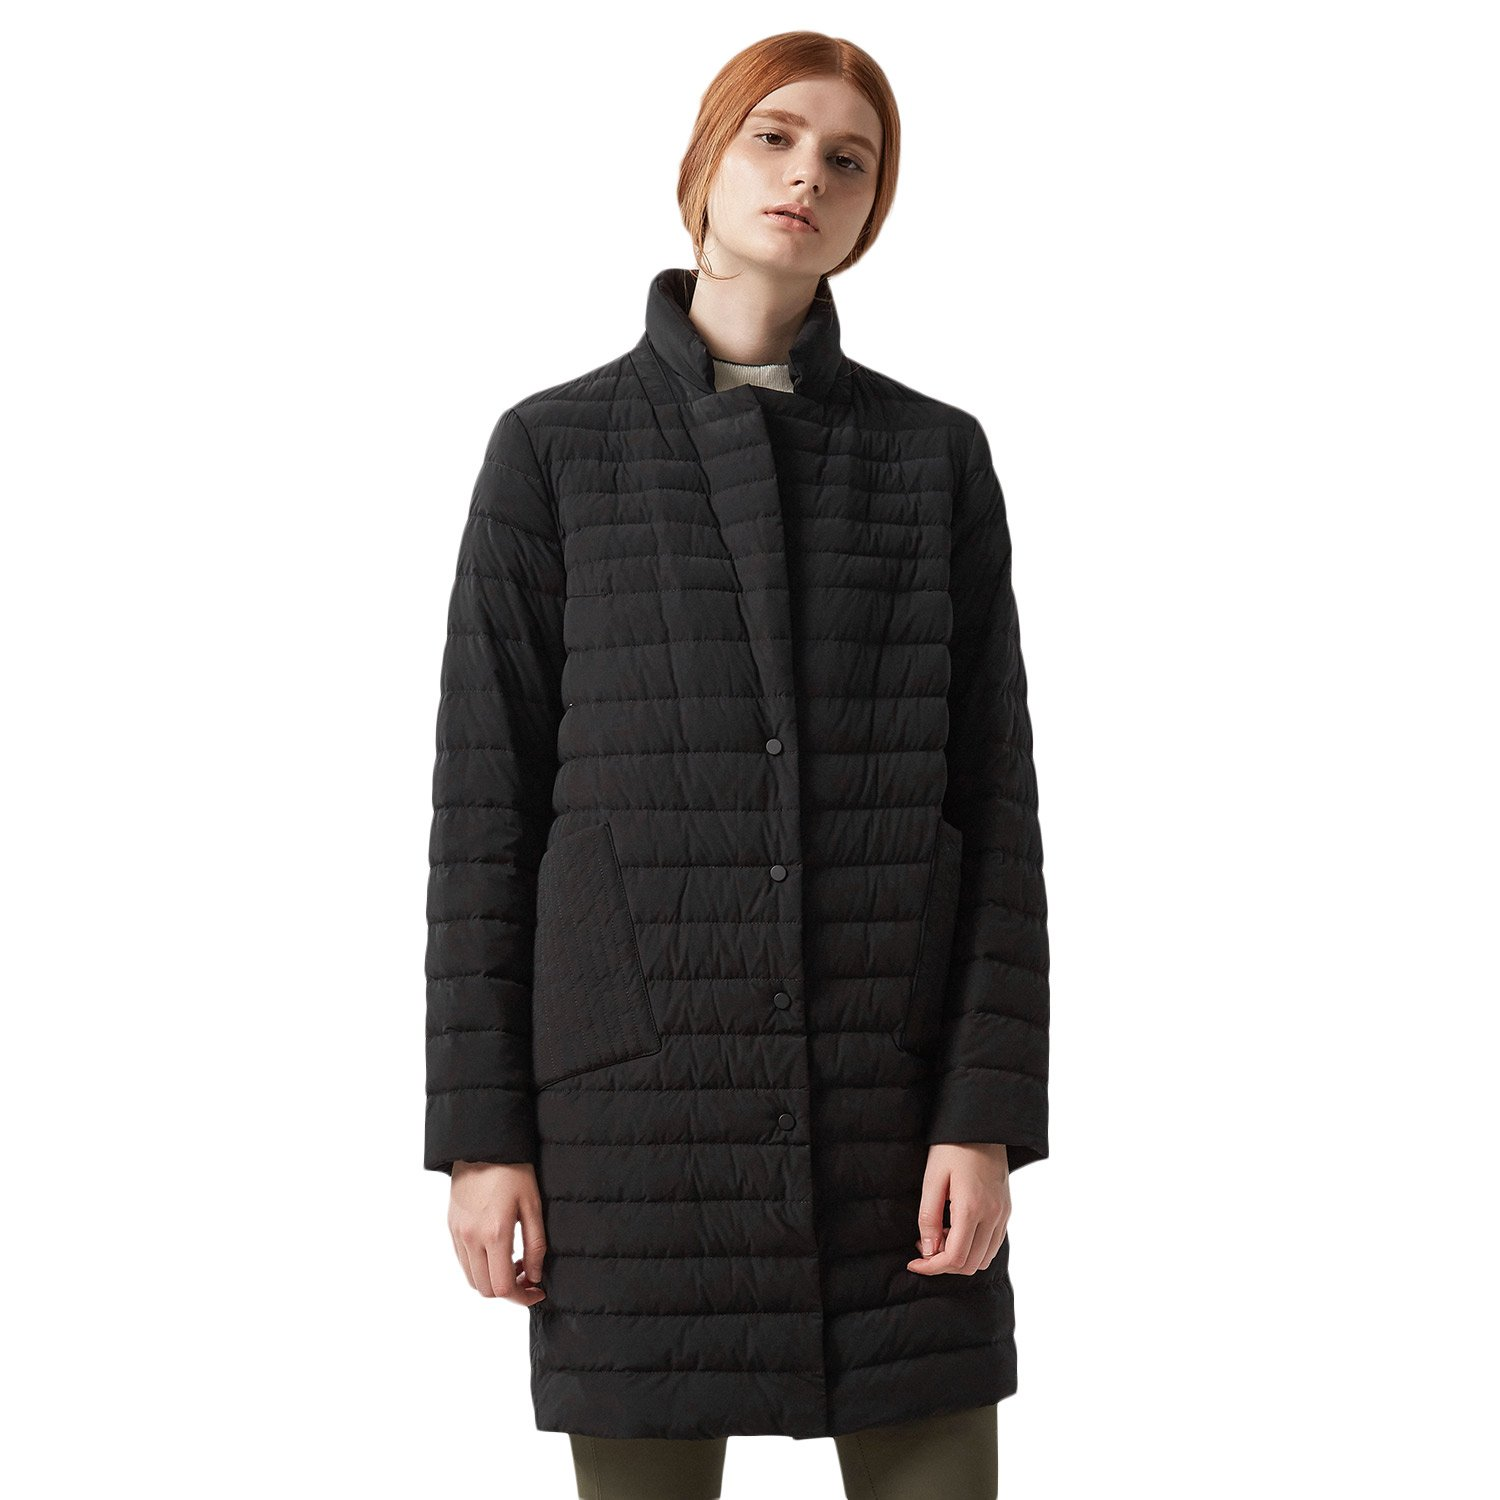 BOSIDENG Women's Early Winter Super Goose Down Jacket Parka Stand Collar Mid-long Business Grace OL Outerwear Basic Top Down Coat (180/100A 8056 Black) by BOSIDENG